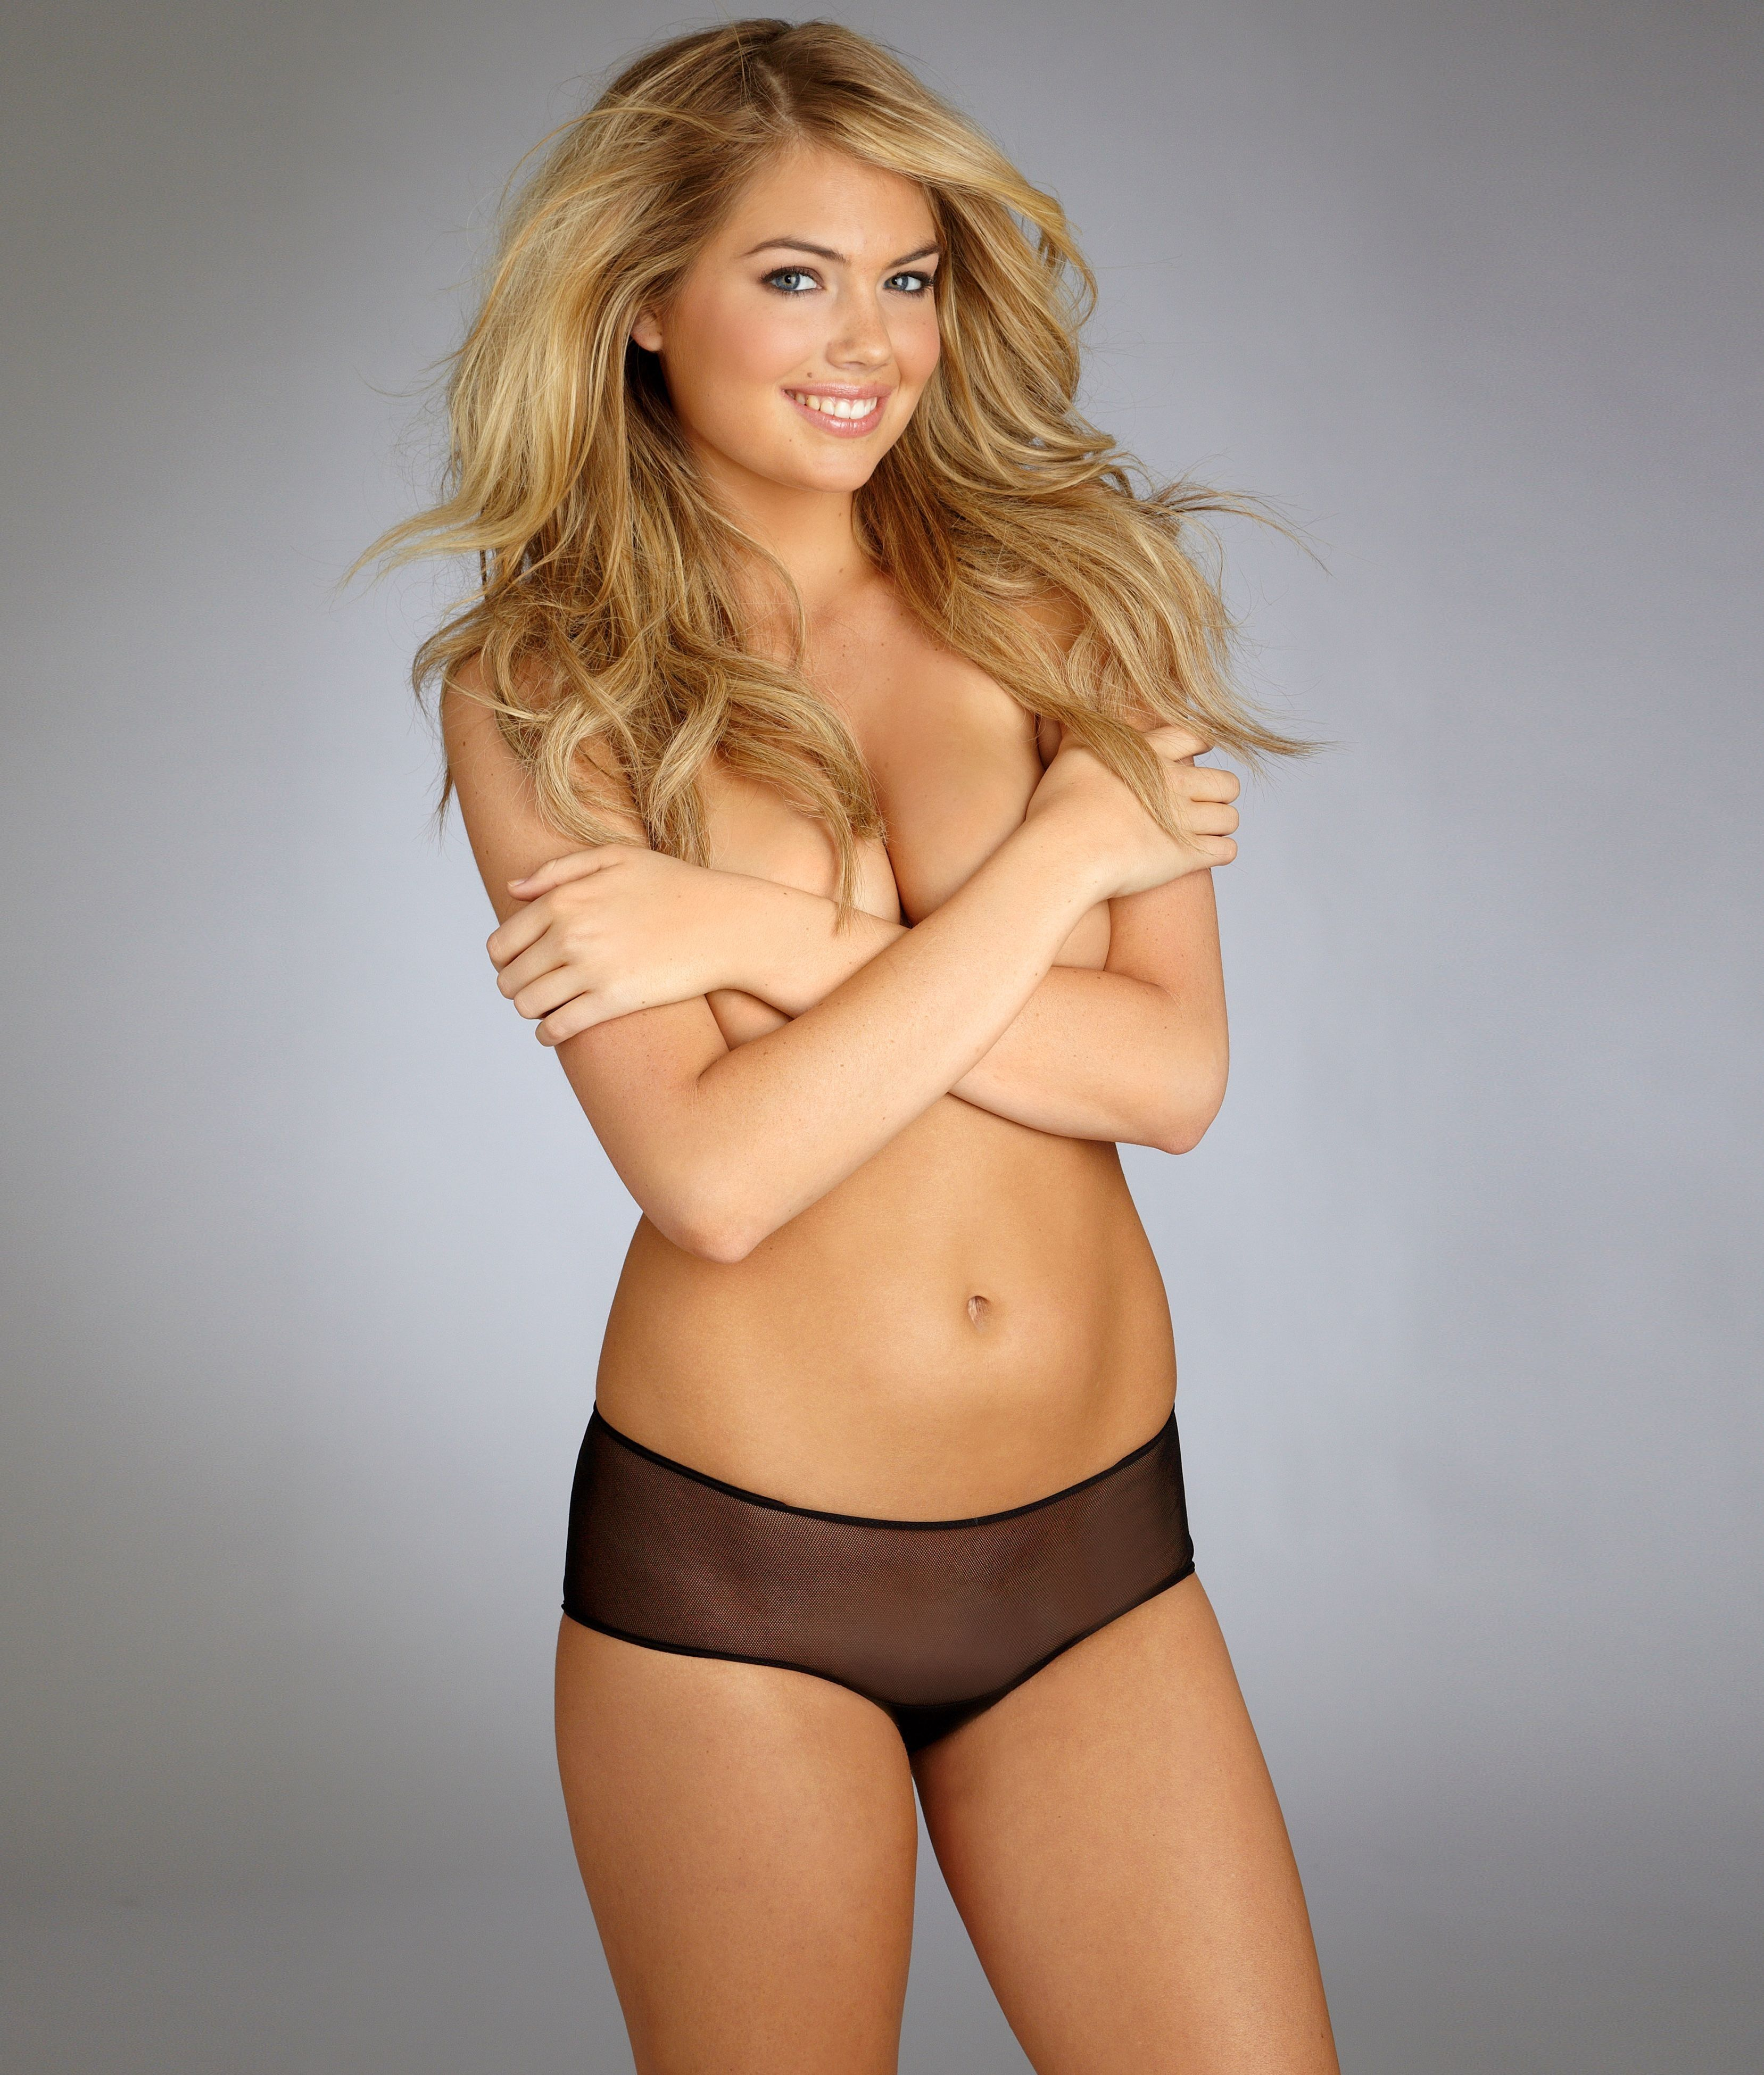 kateupton sports illustrated swimsuit issue sports illustrated